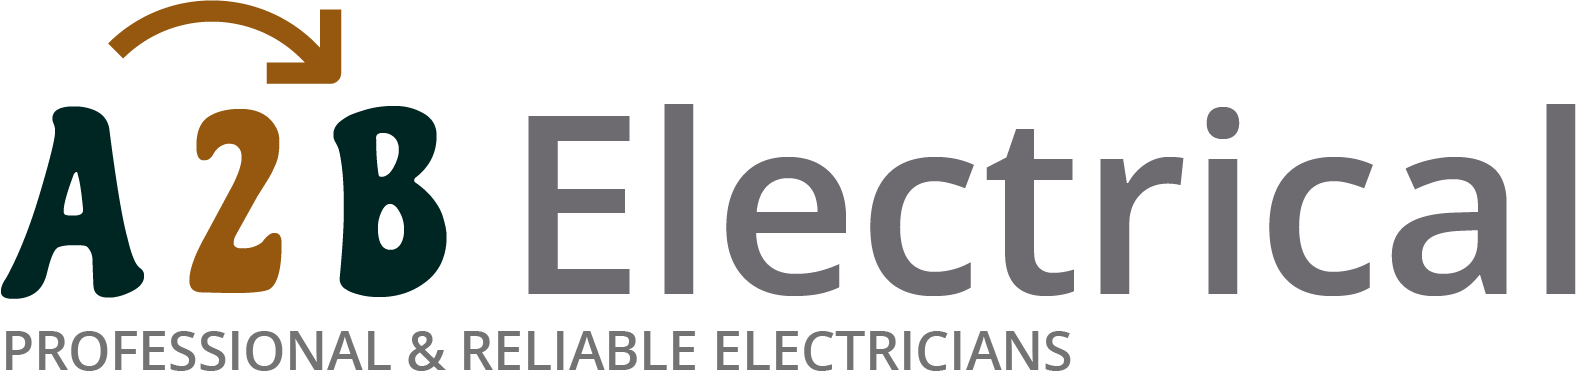 If you have electrical wiring problems in Nine Elms, we can provide an electrician to have a look for you.